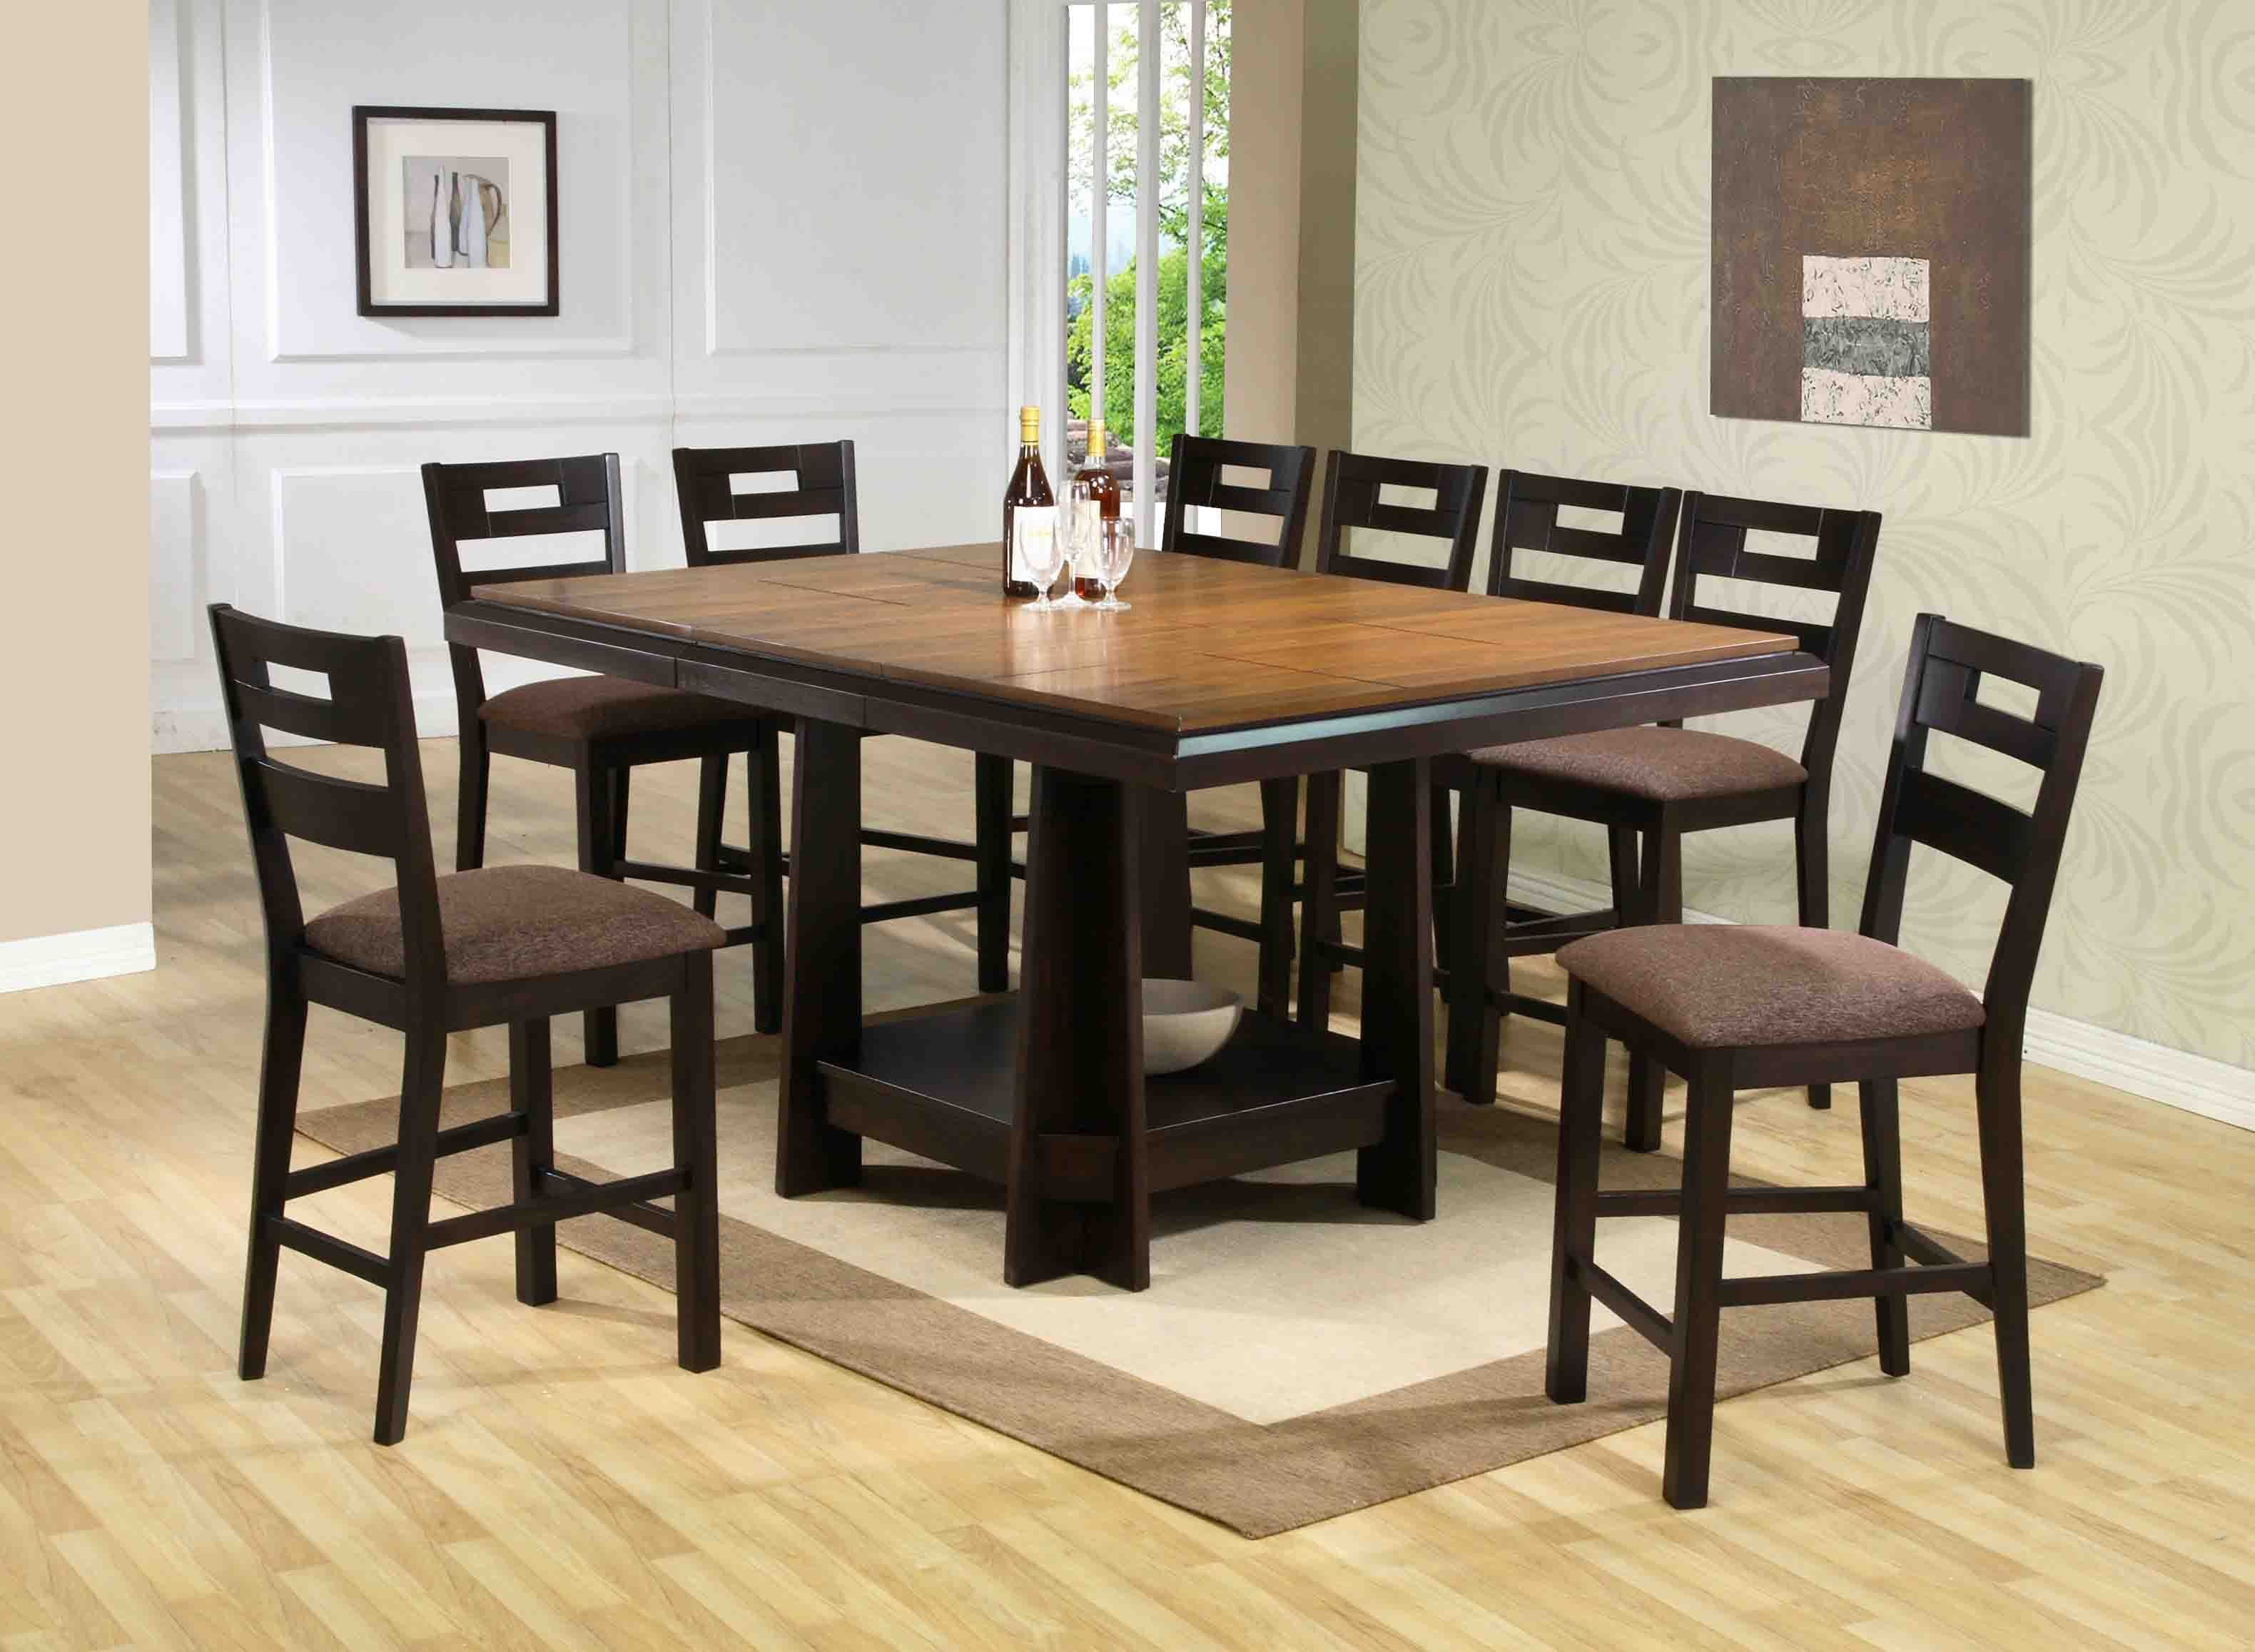 New Fashion Furniturefashion Furnituredining Tables And Chairs Classy Reclaimed Wood Dining Room Set Design Decoration